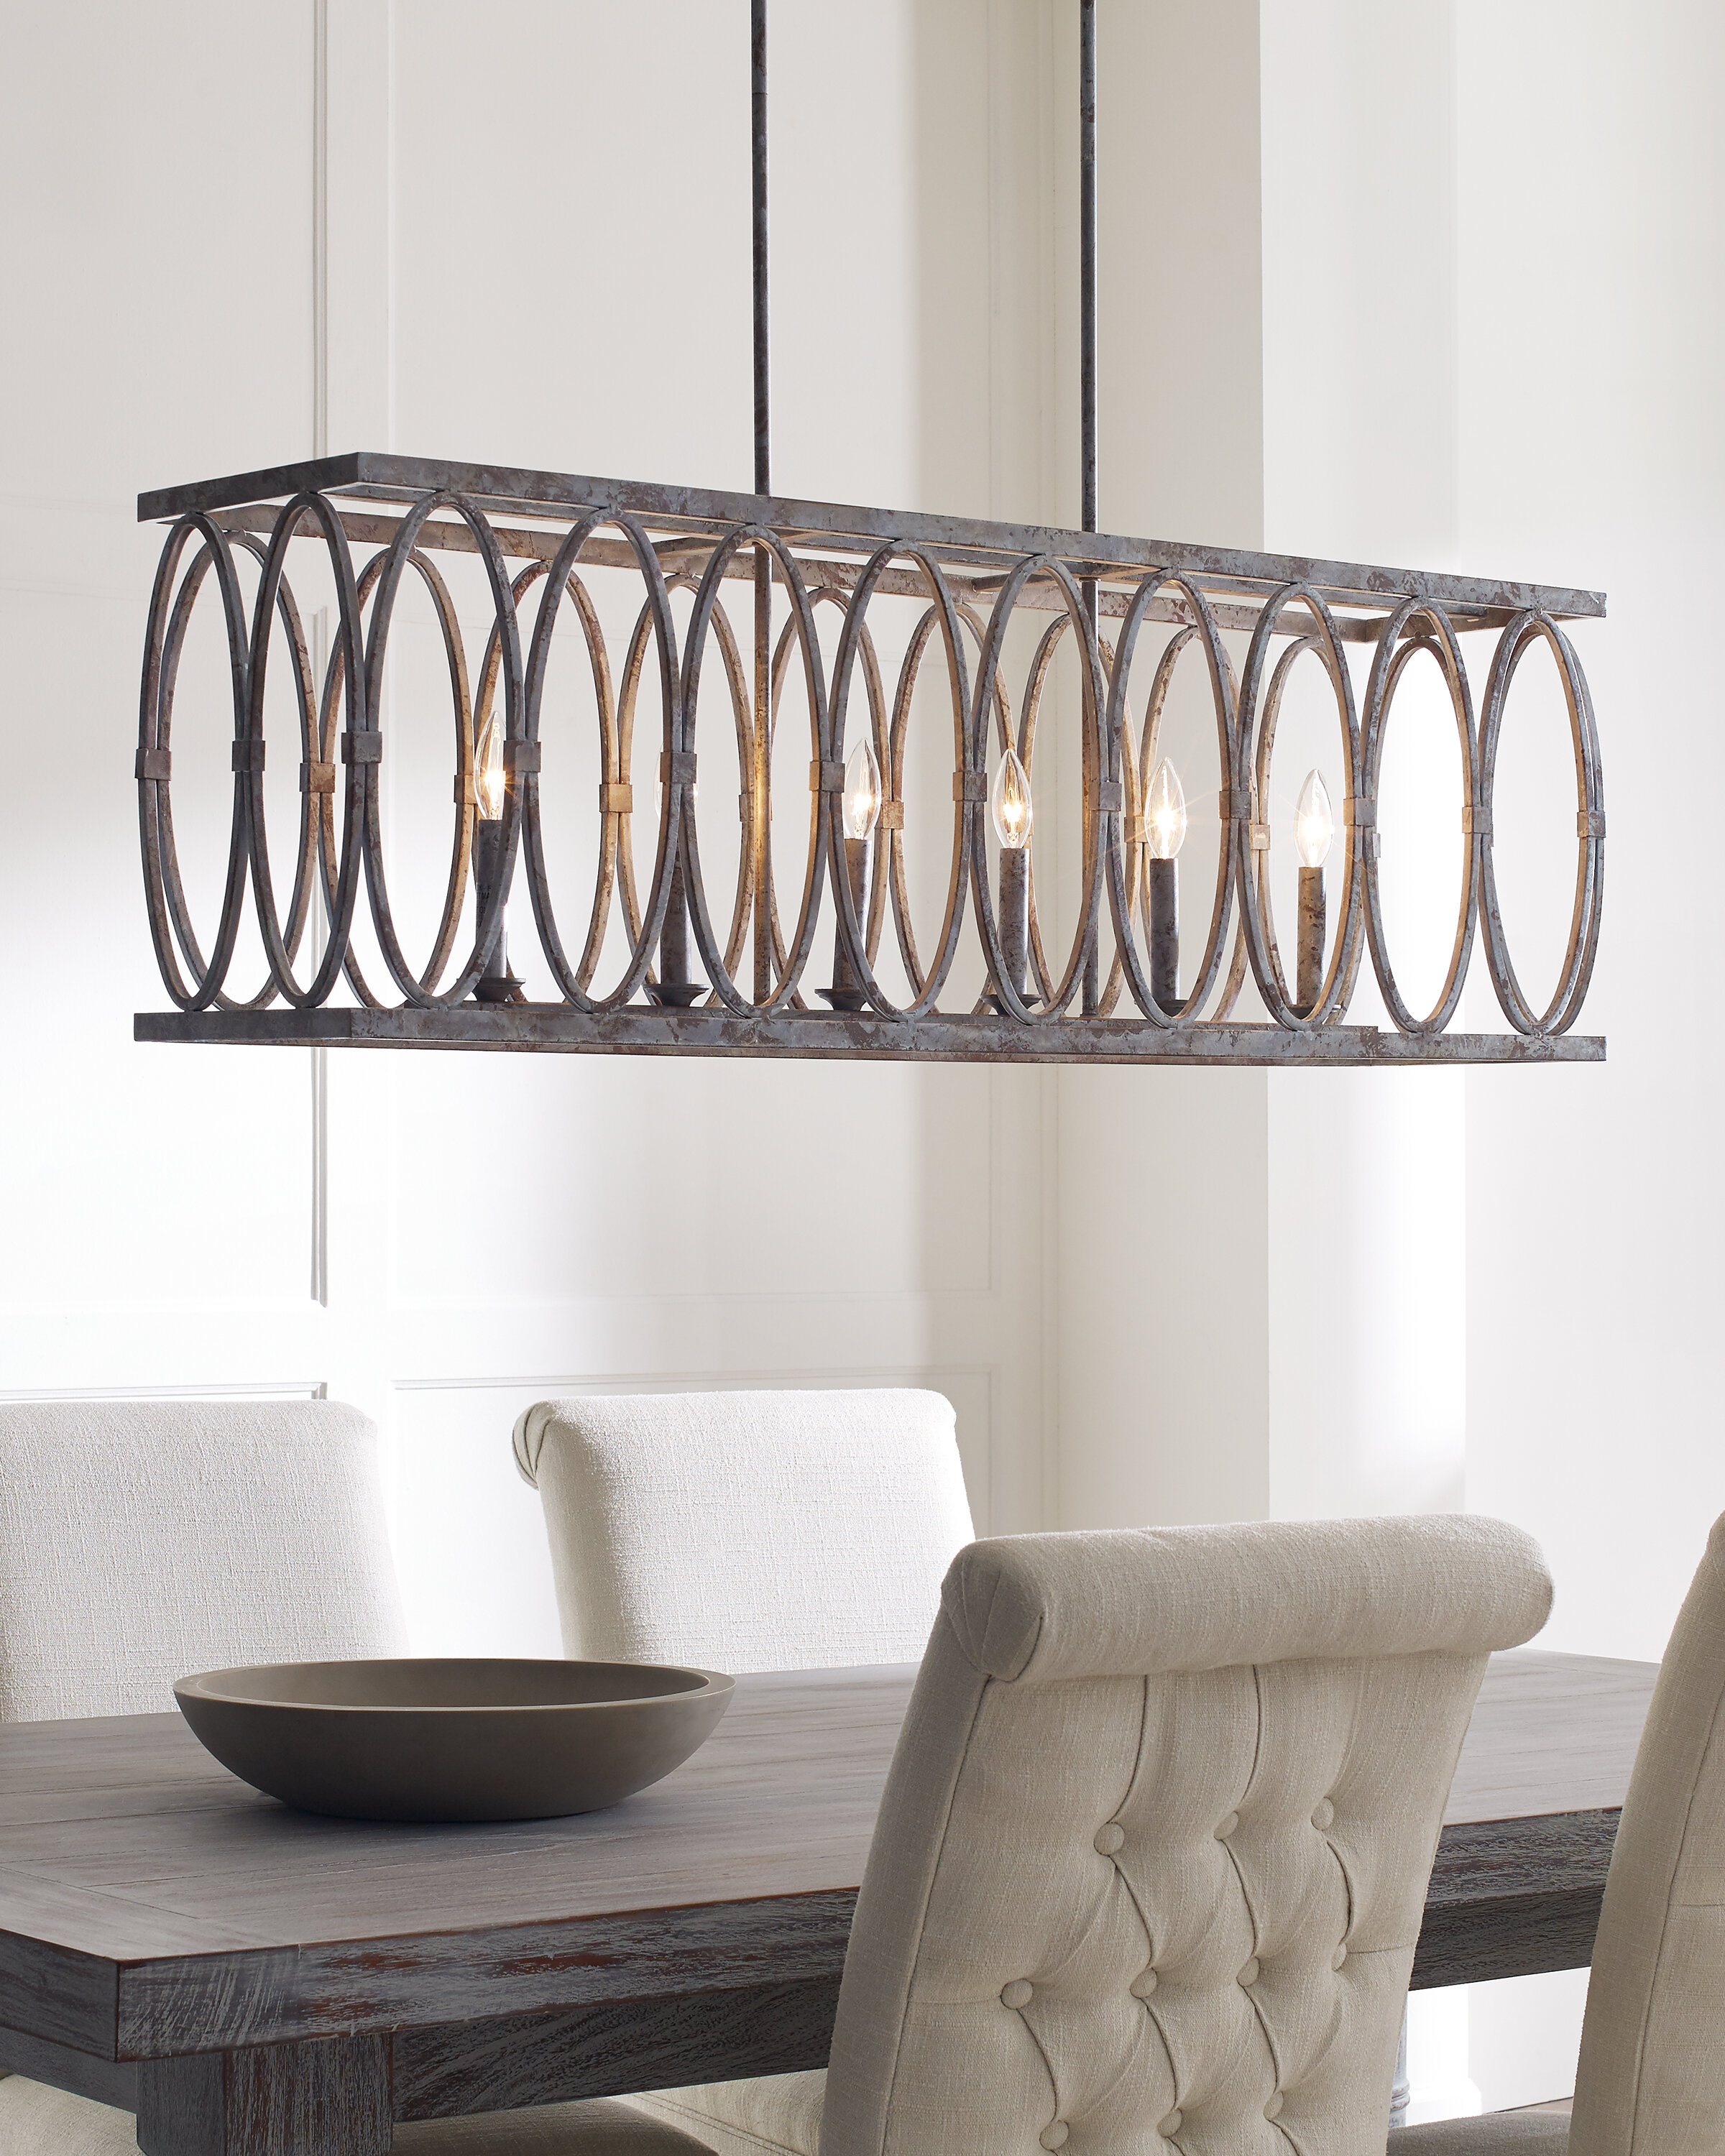 French Country Kitchen Island Pendant Lighting You Ll Love In 2021 Wayfair